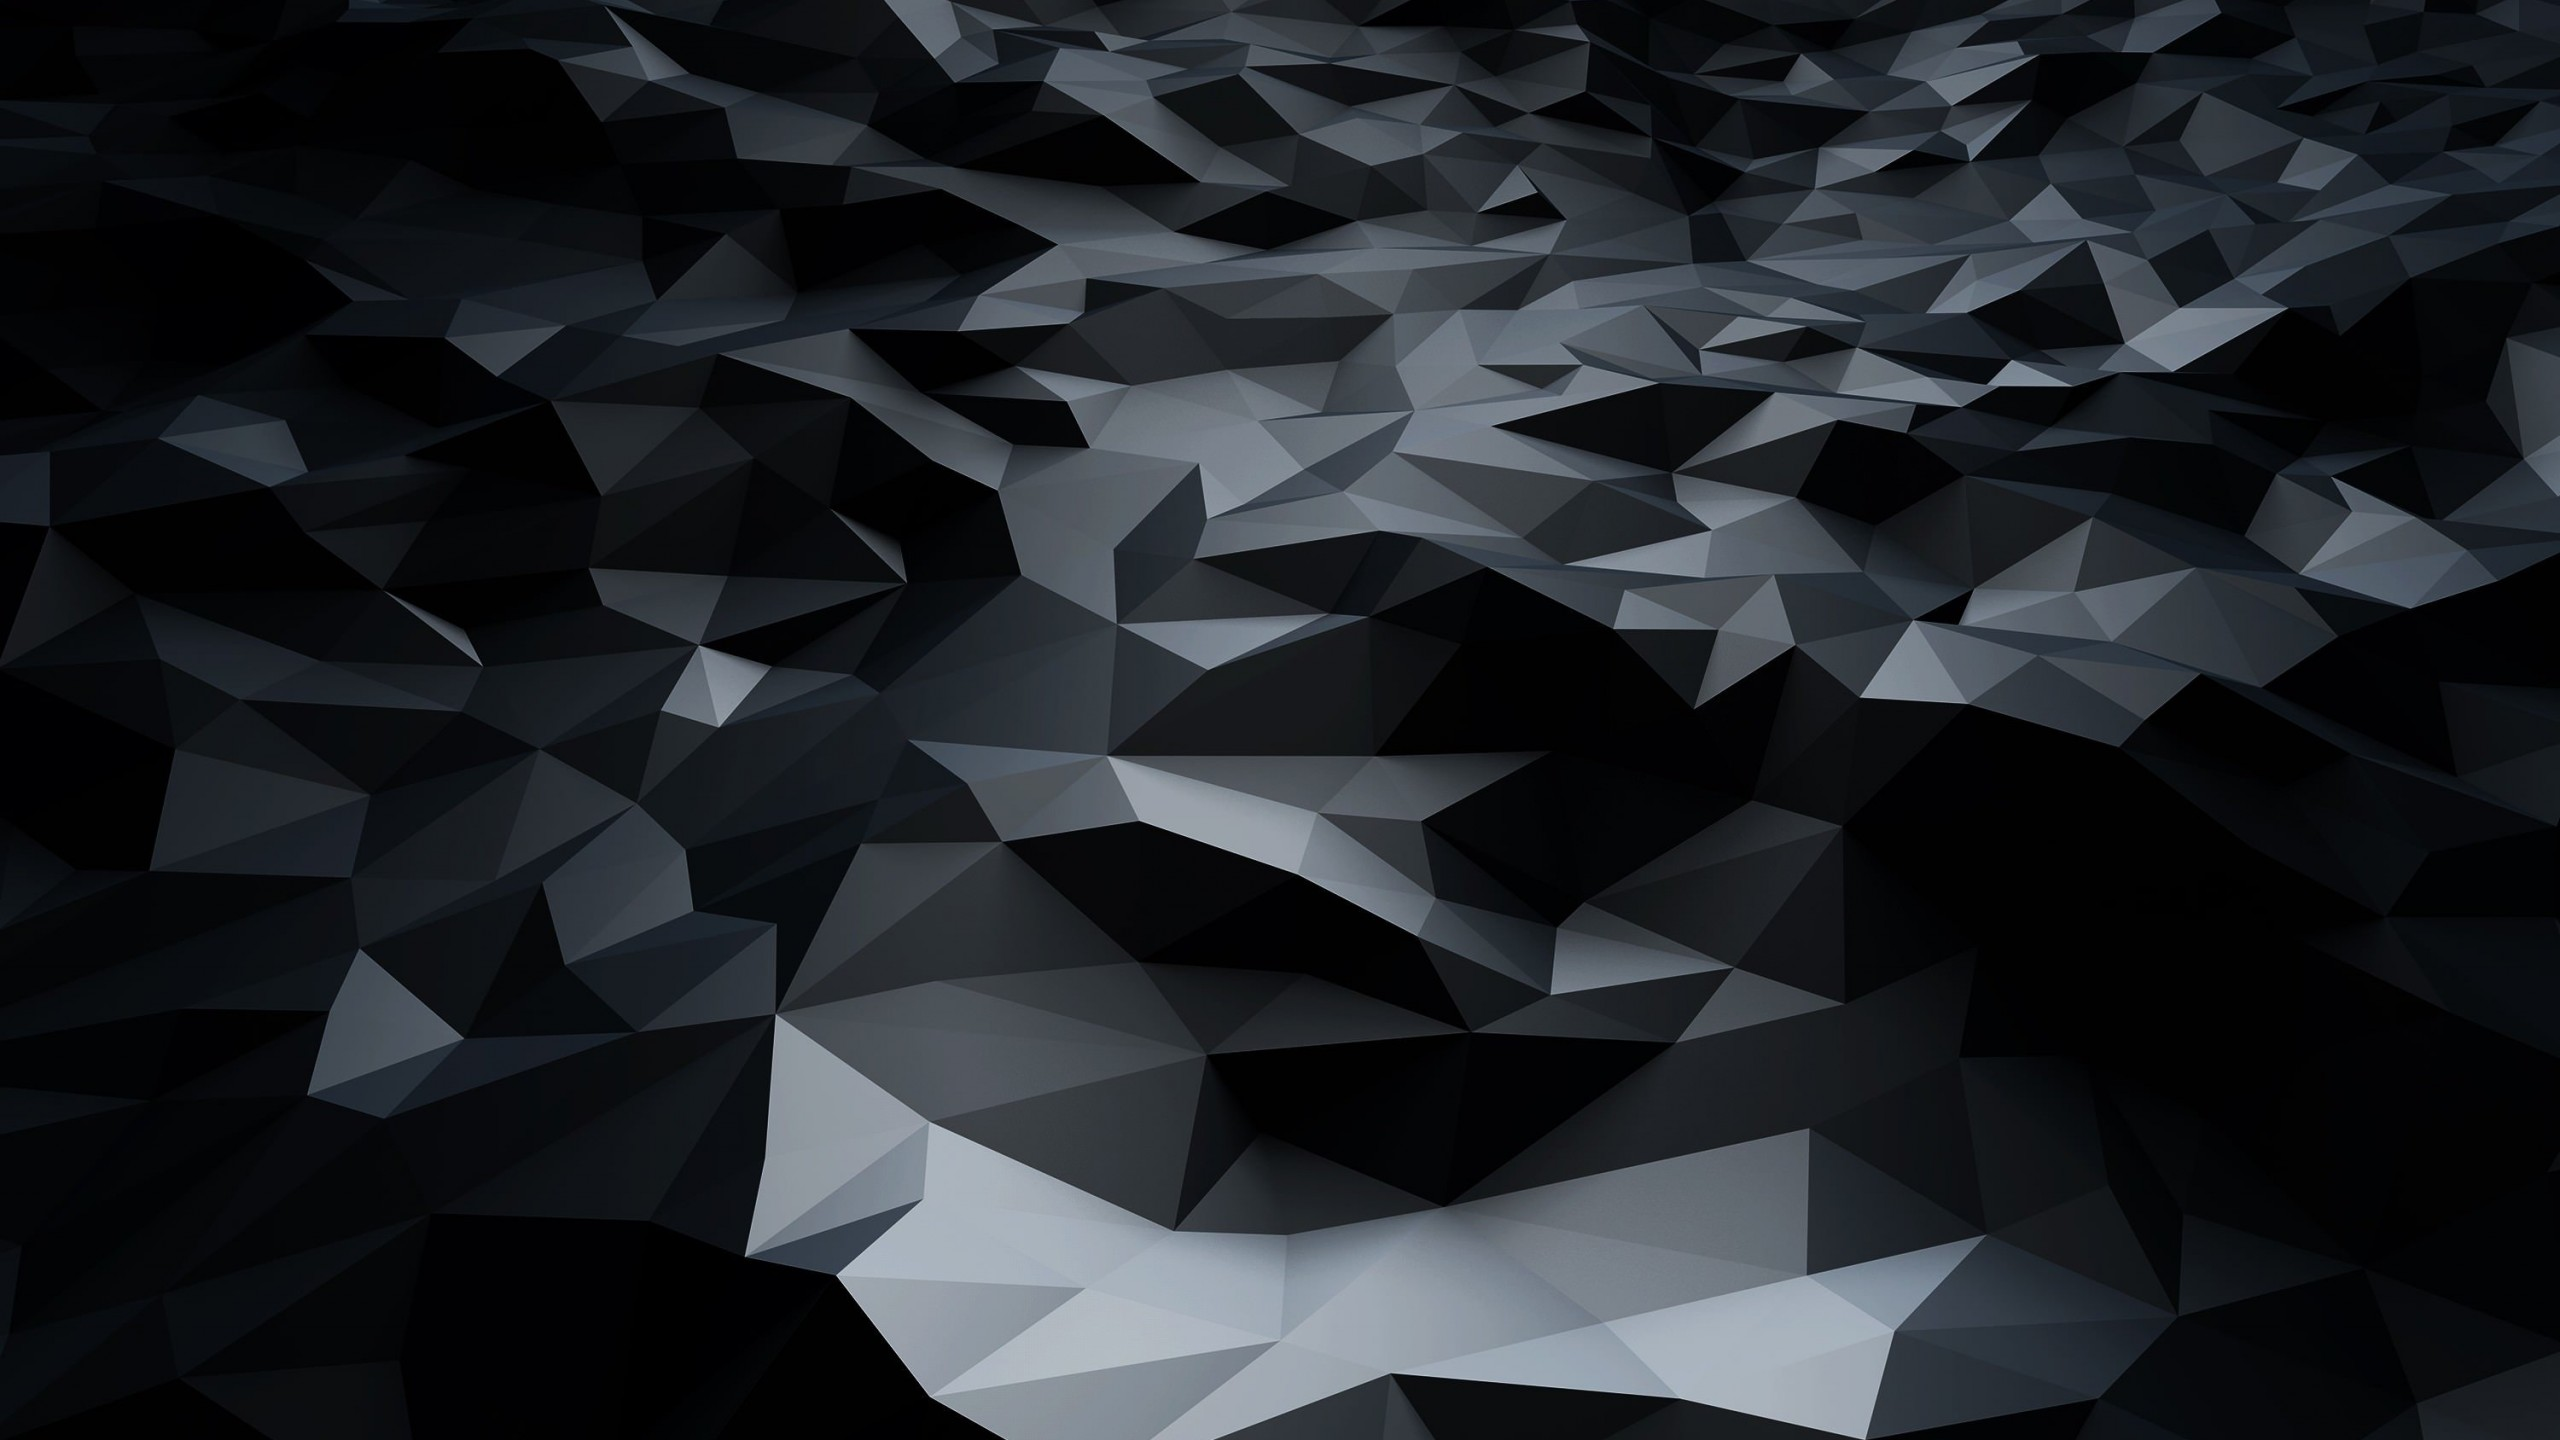 Abstract Black Low Poly Wallpaper for Desktop 2560x1440